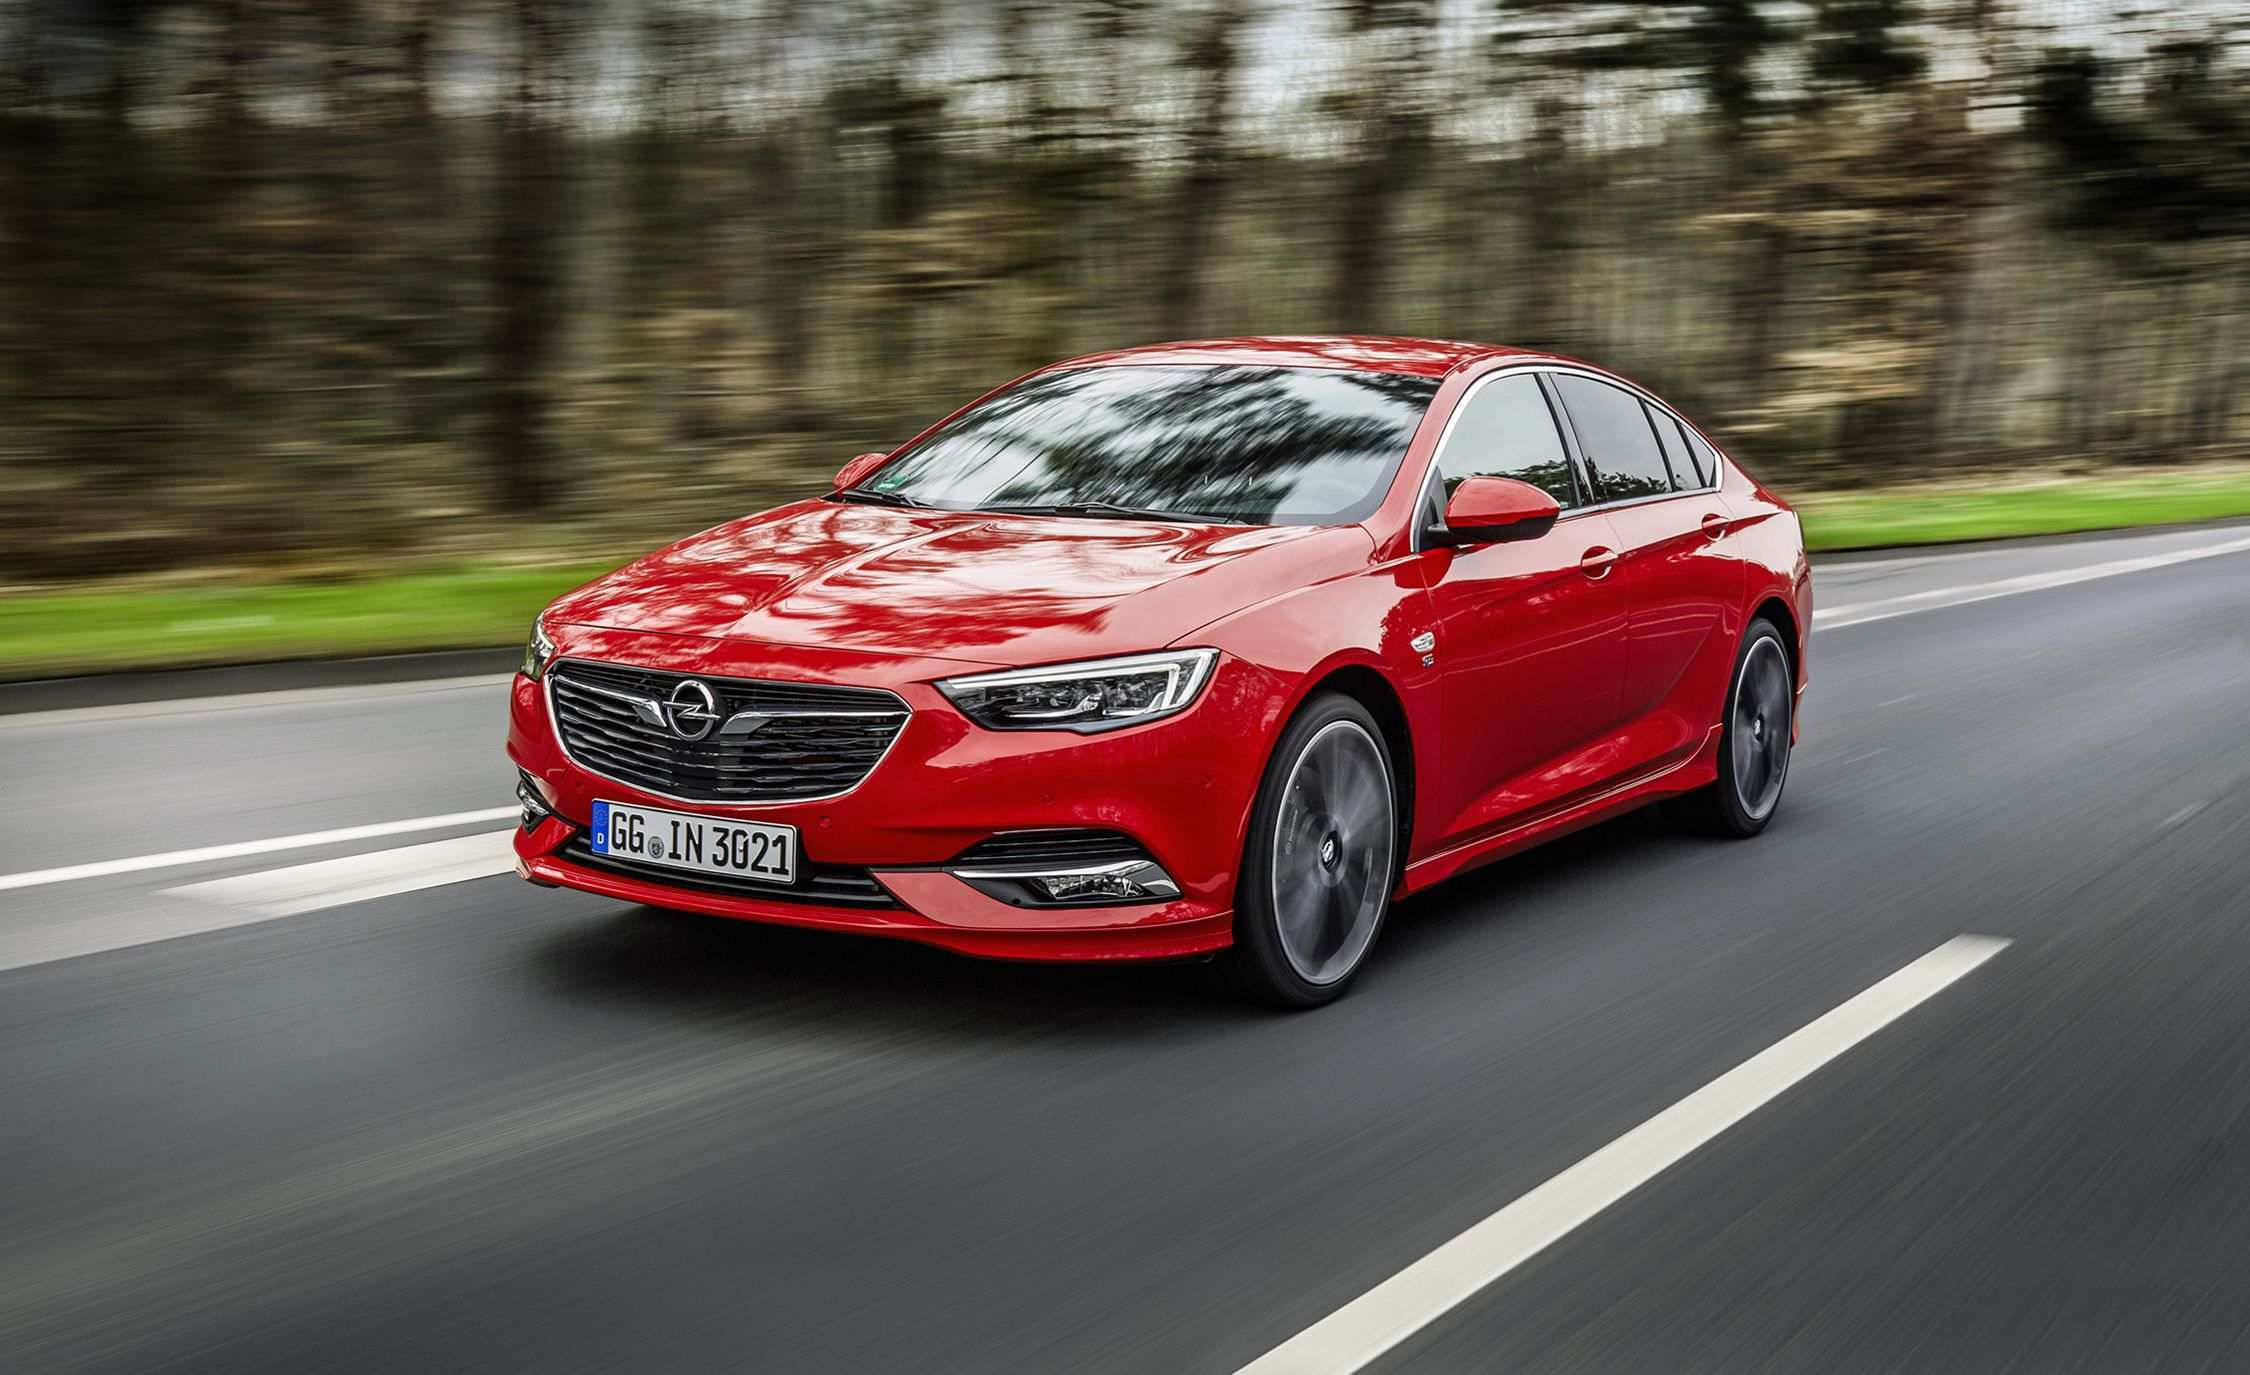 74 Gallery of Opel Insignia Grand Sport 2020 First Drive for Opel Insignia Grand Sport 2020